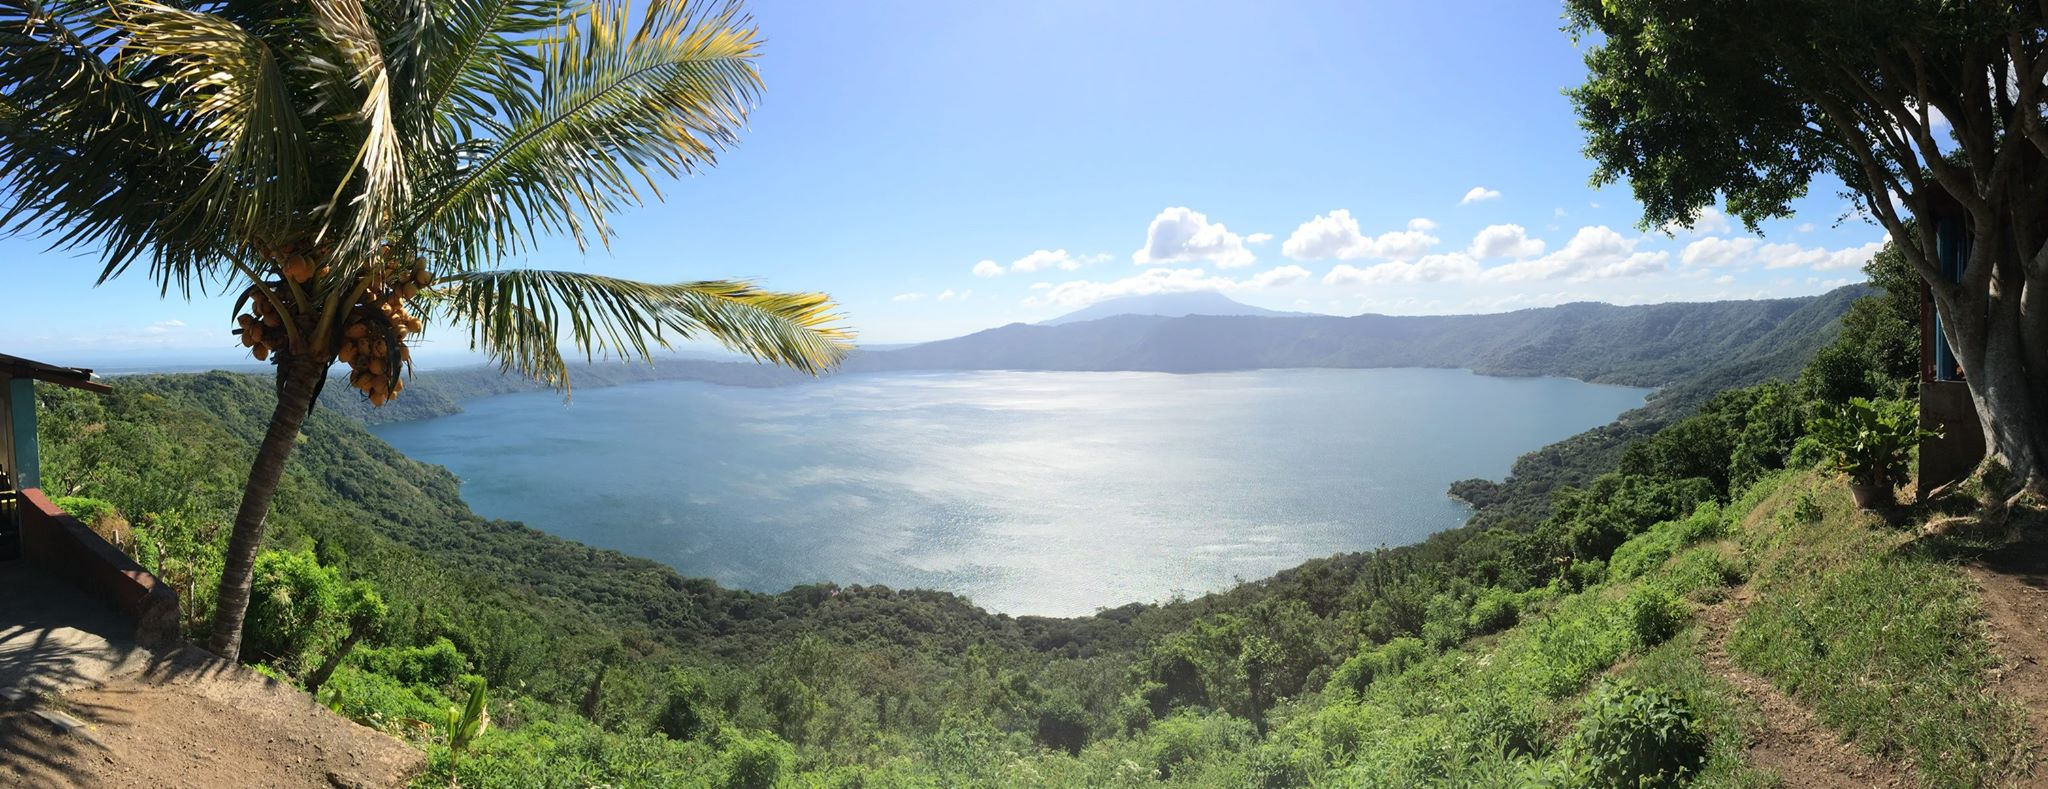 Laguna de Apoyo – Travel guide at Wikivoyage